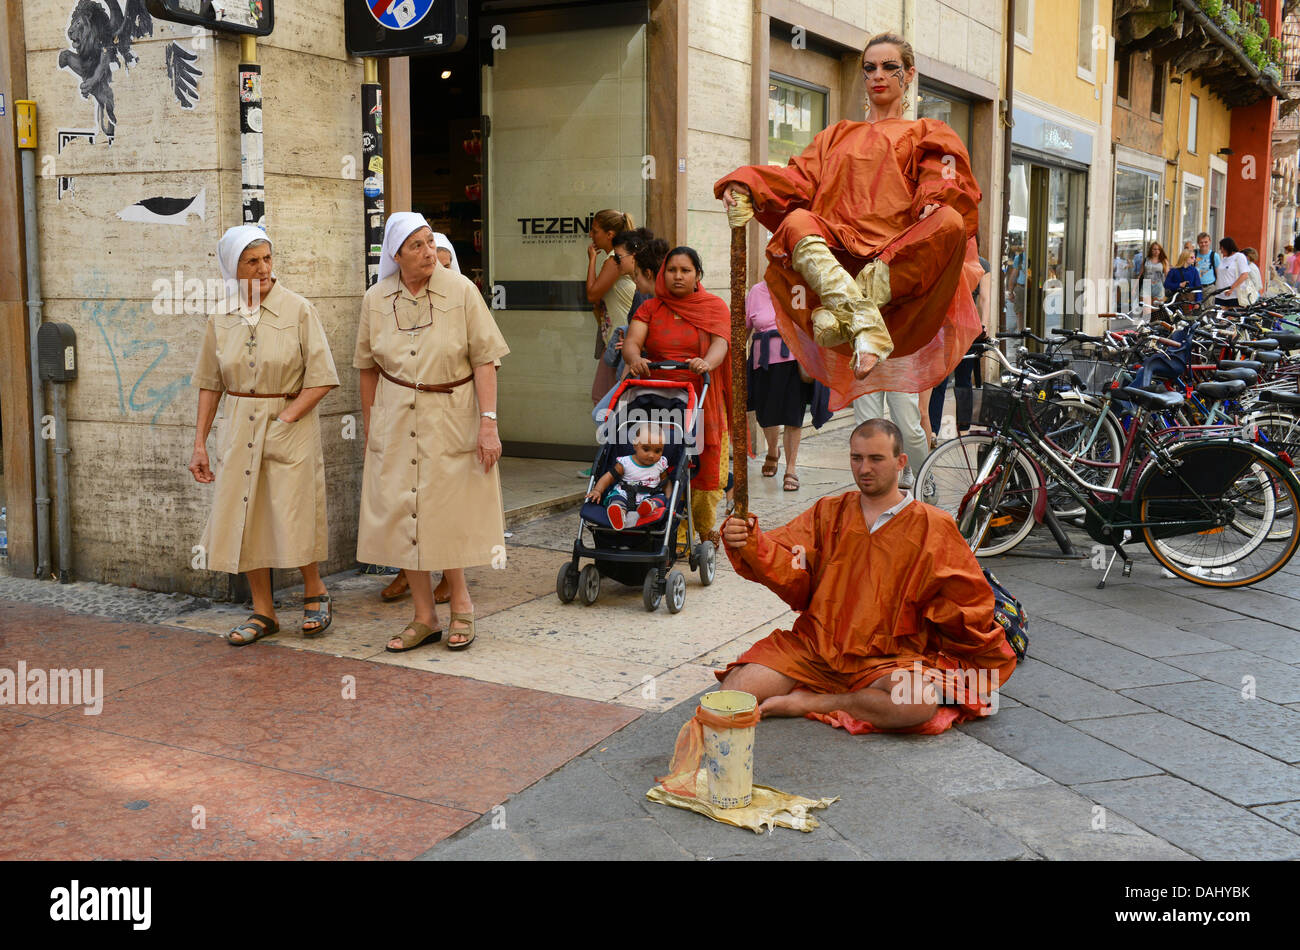 Street mime artists watched by nuns in Verona Italy - Stock Image